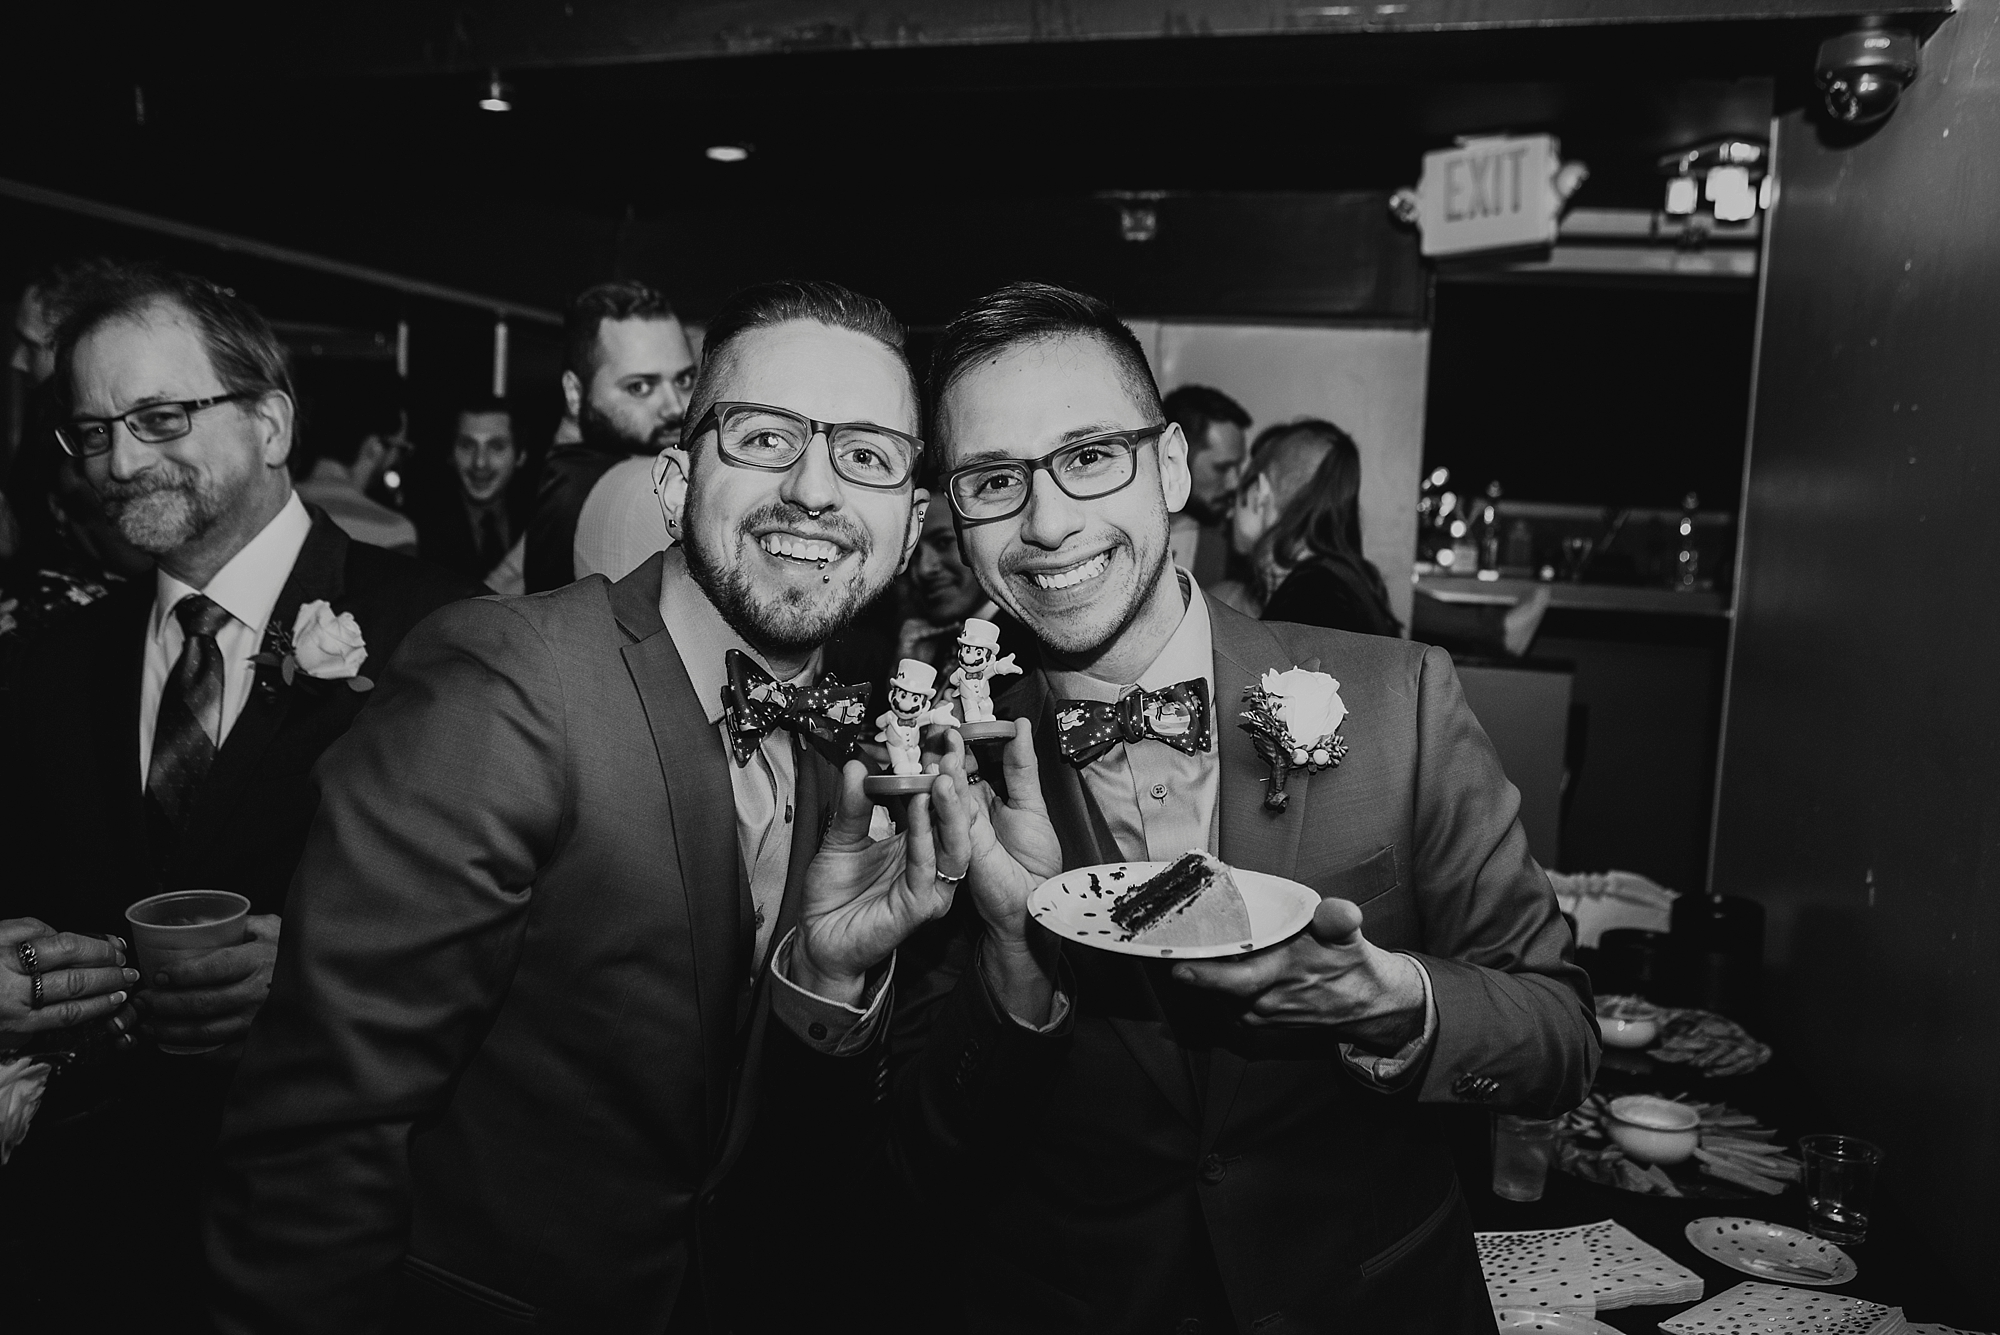 Joe_Mac_Creative_Philadelphia_Philly_LGBT_Gay_Engagement_Wedding_Photography__0165.jpg